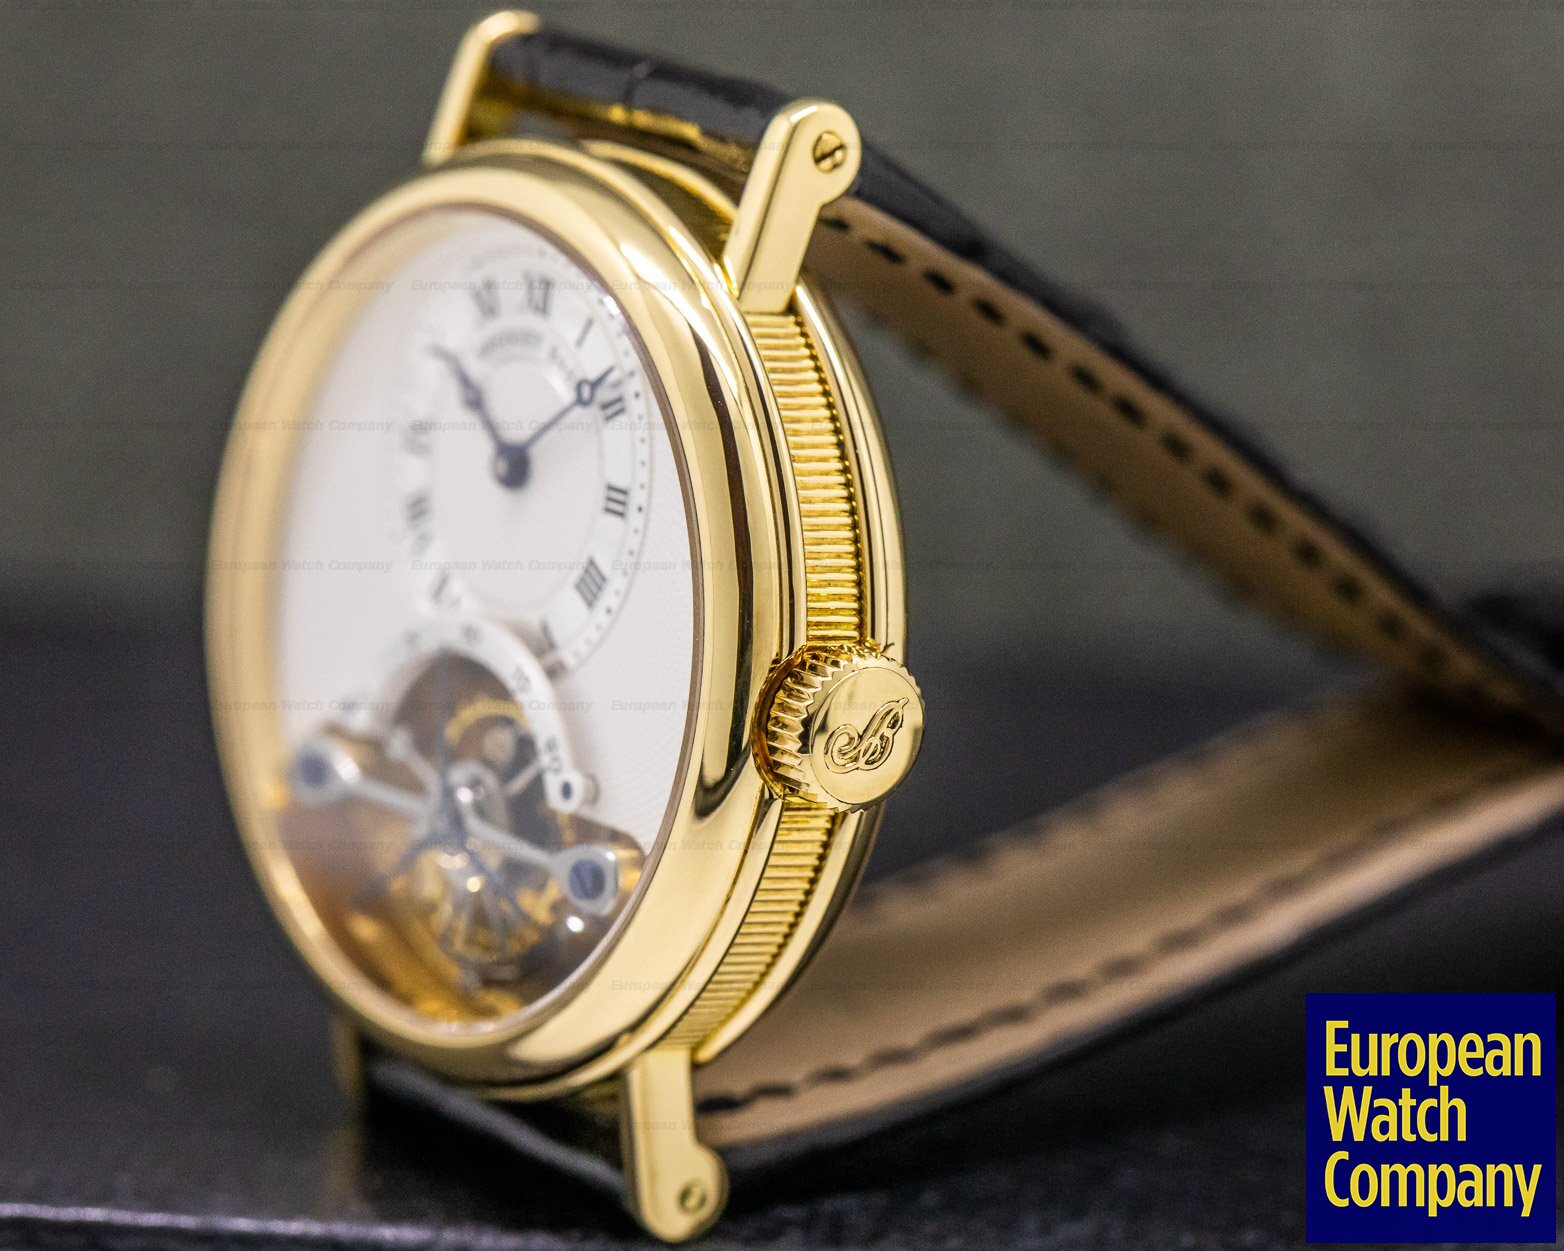 Breguet 3350 Tourbillon 18K Yellow Gold